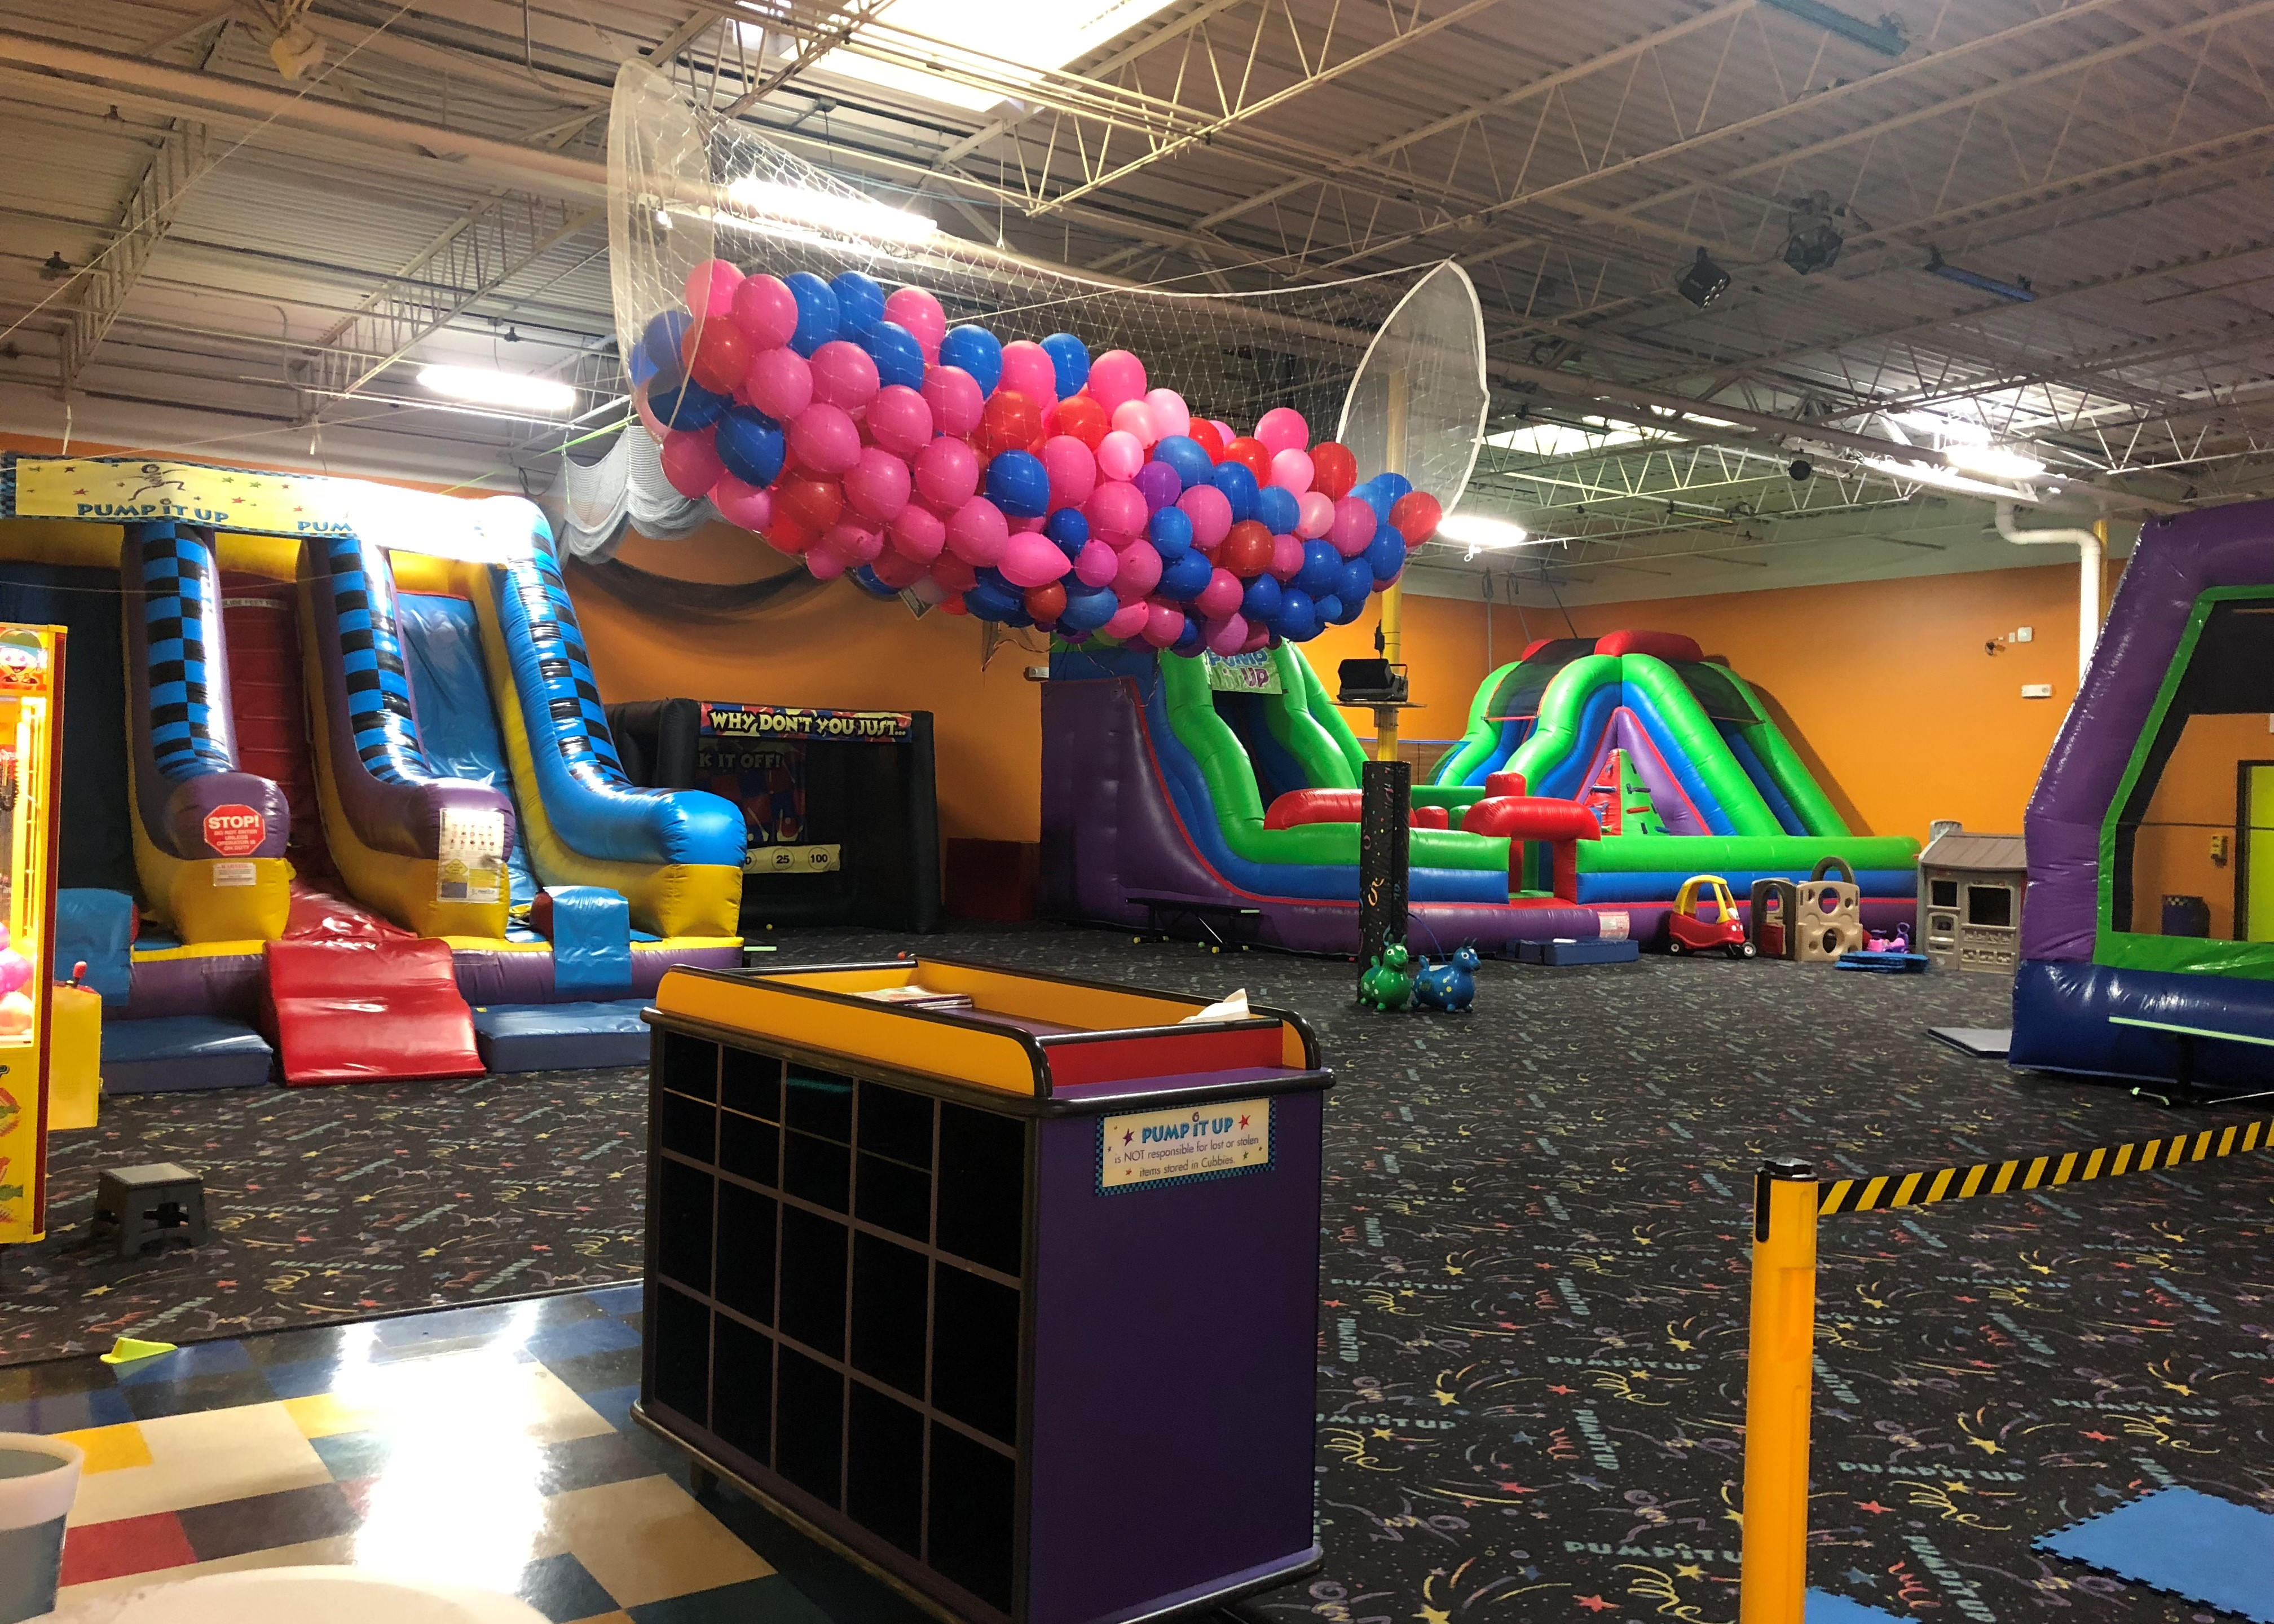 Pump It Up arena space for private parties with large inflatables and toddler play toys.